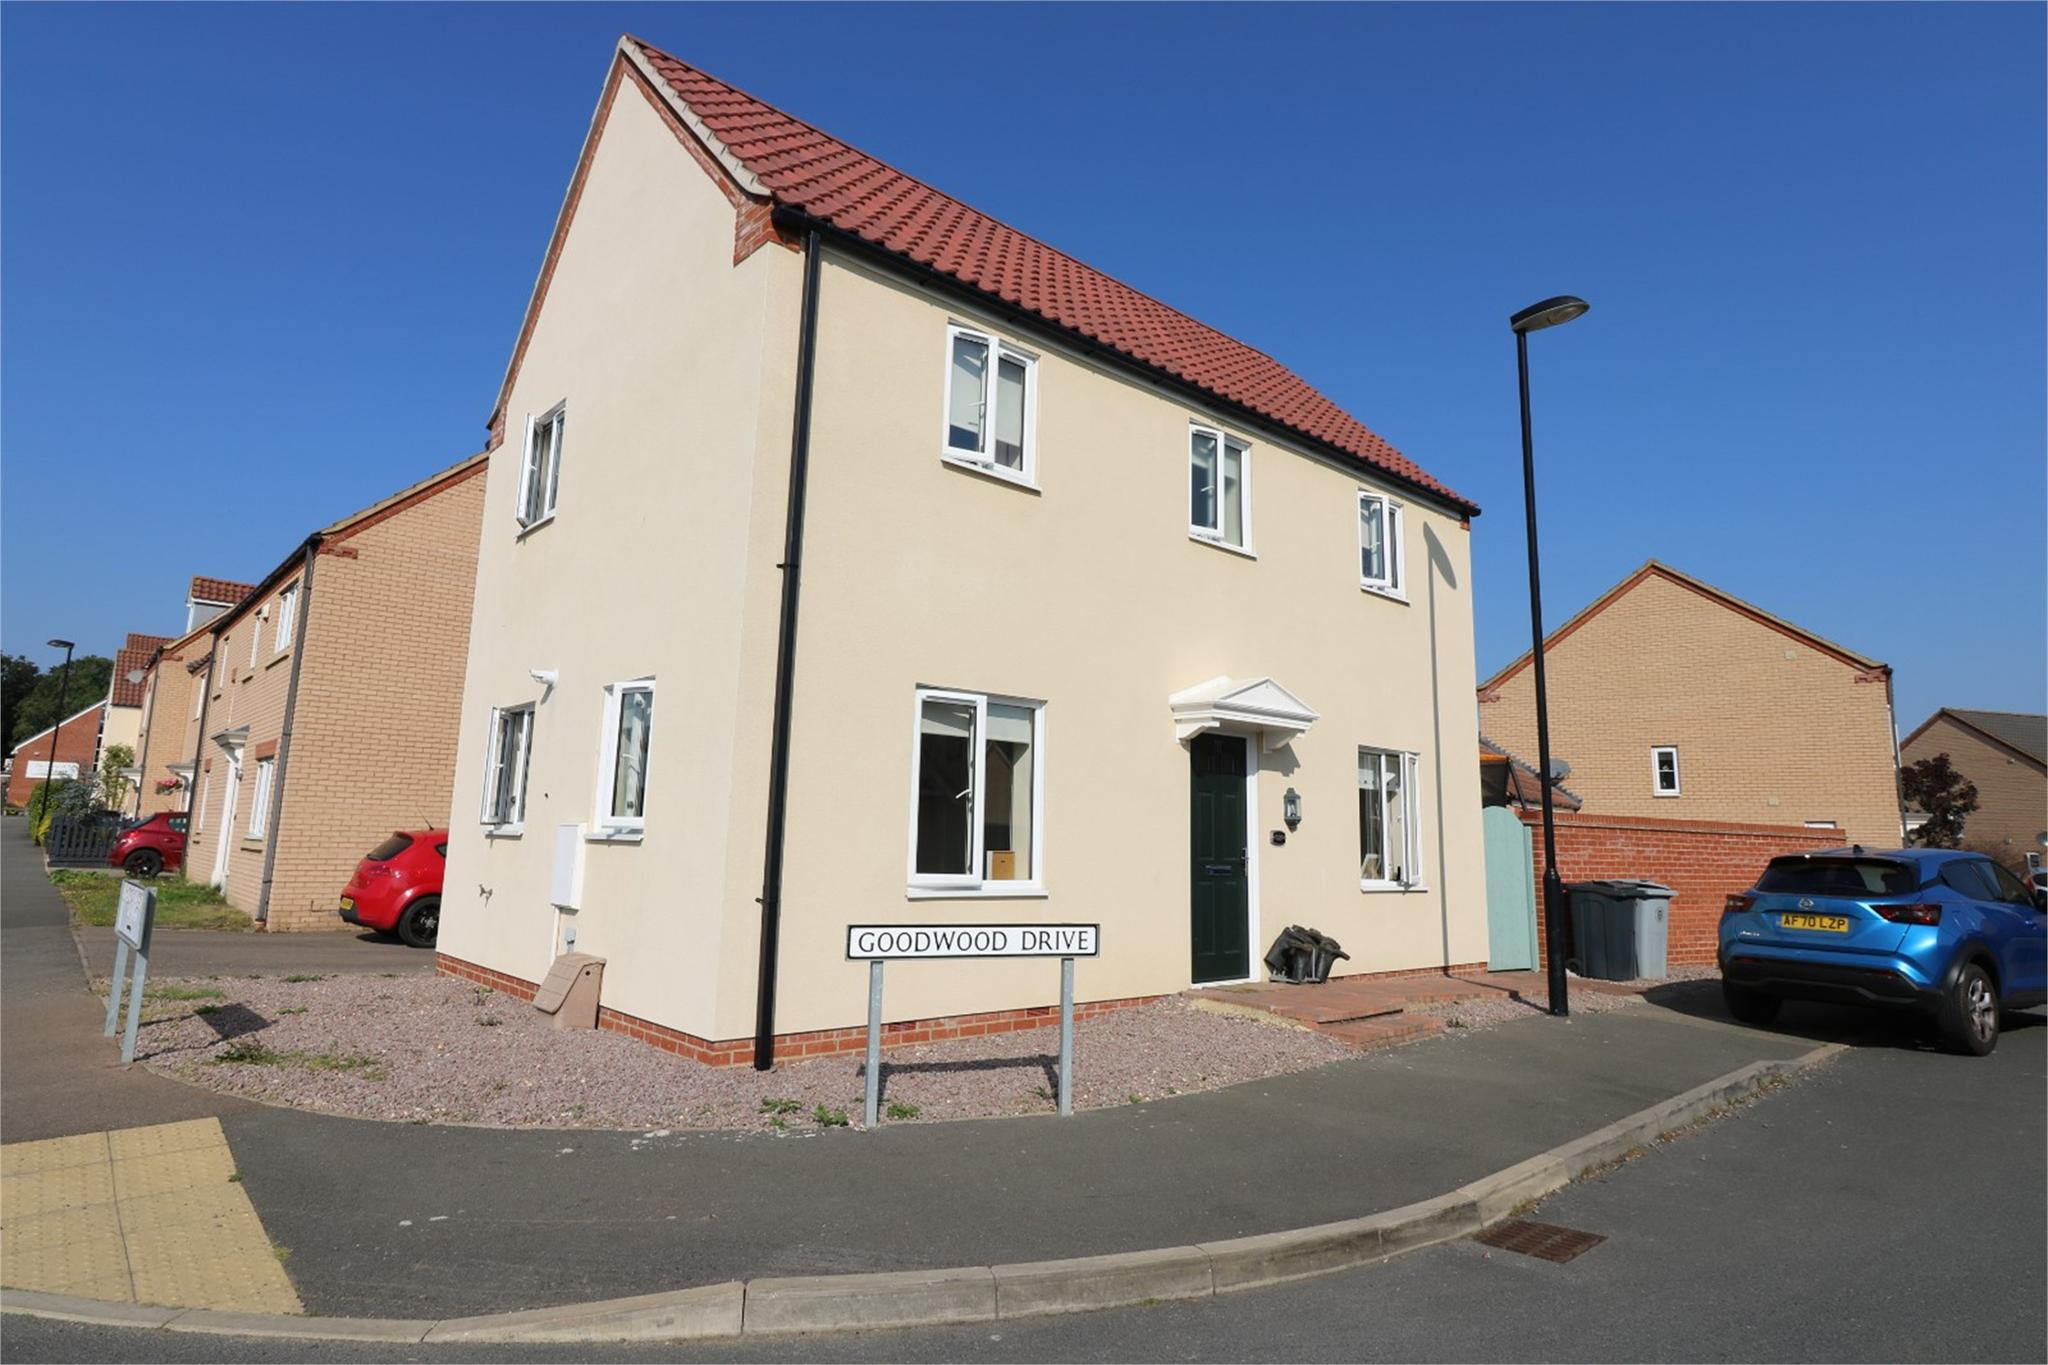 Goodwood Drive, Bourne, Lincolnshire